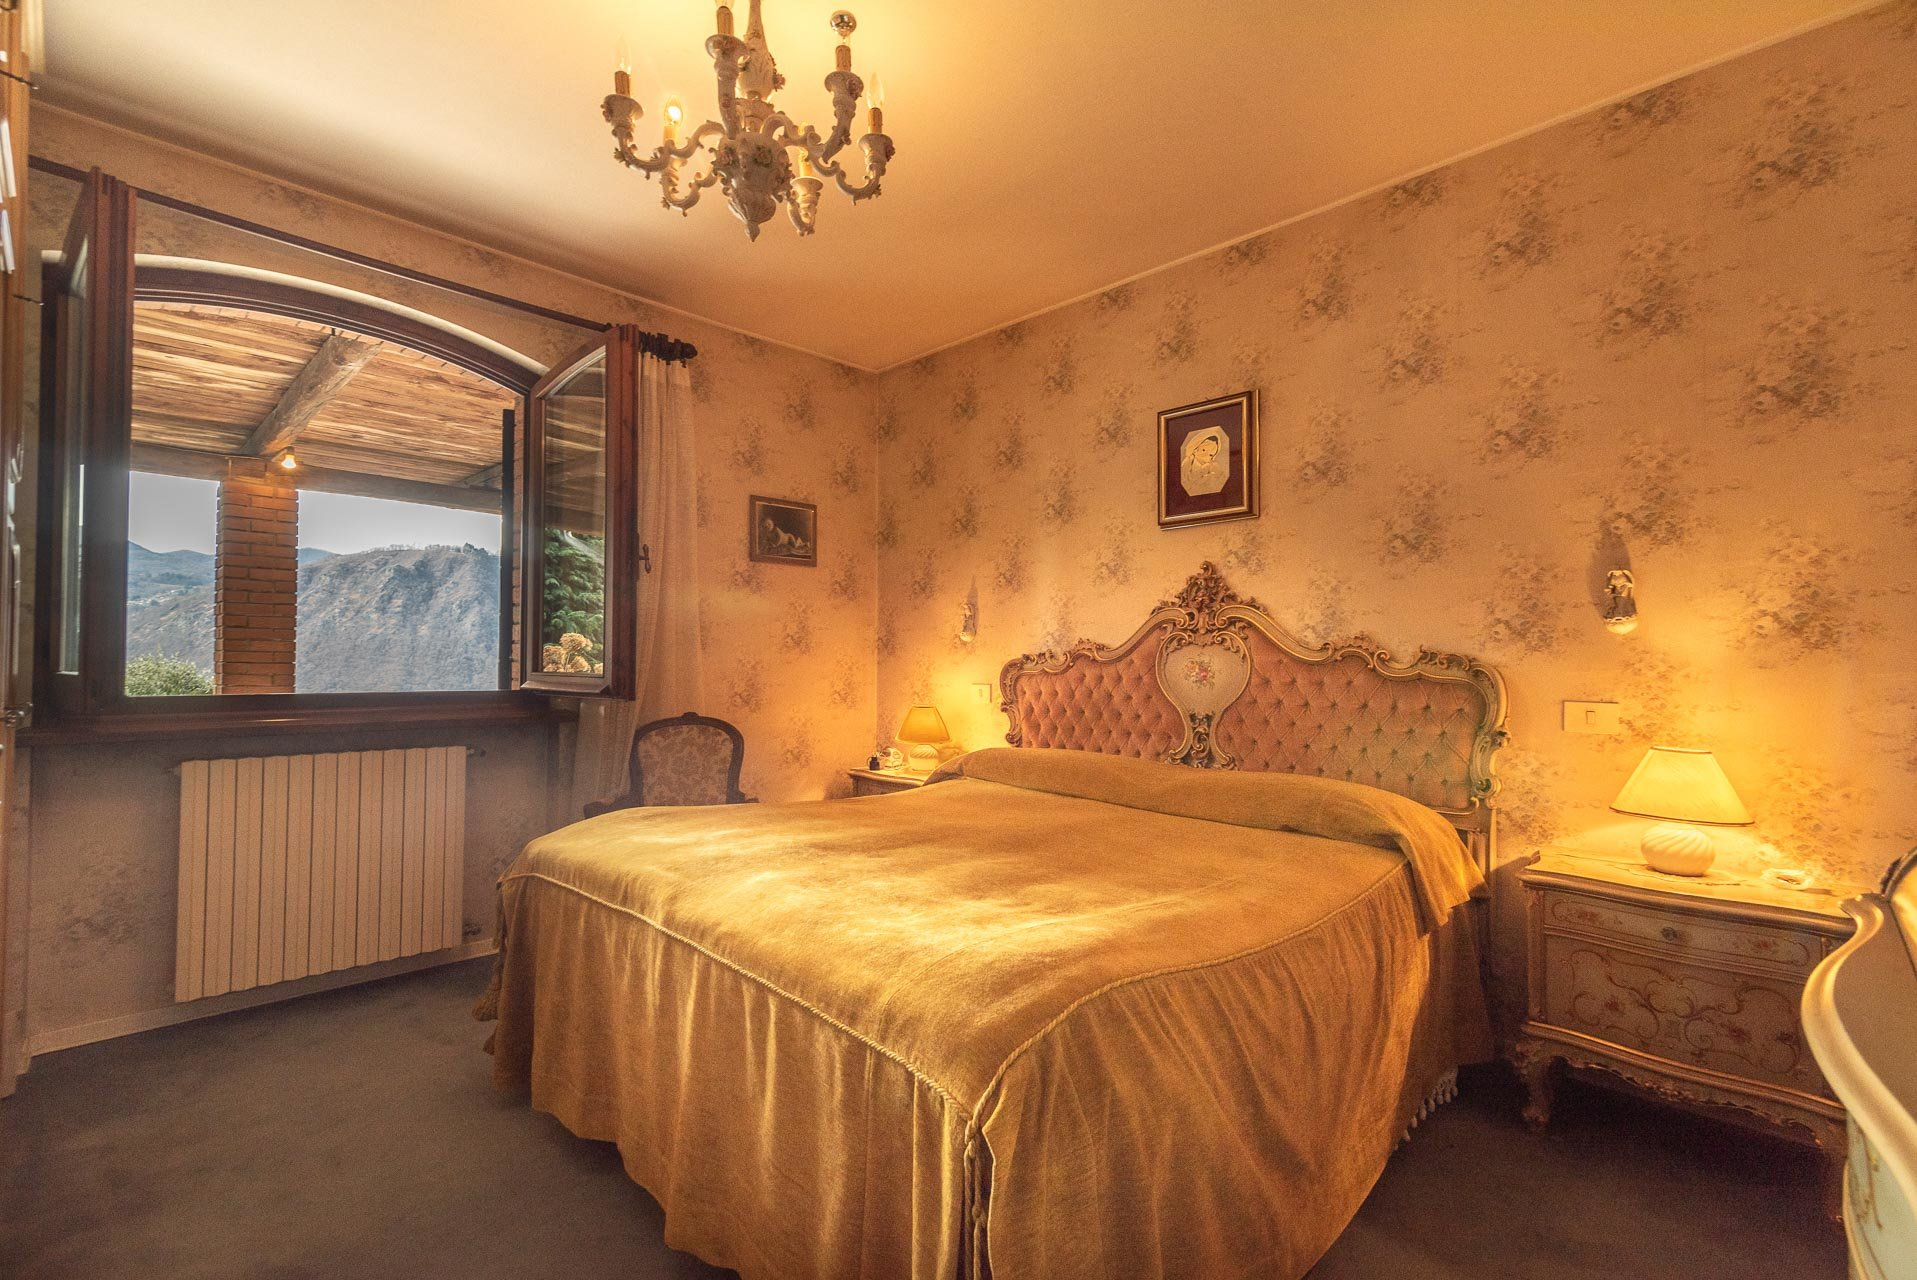 Elegant villa for sale in Pettenasco on Lake Orta - bedroom